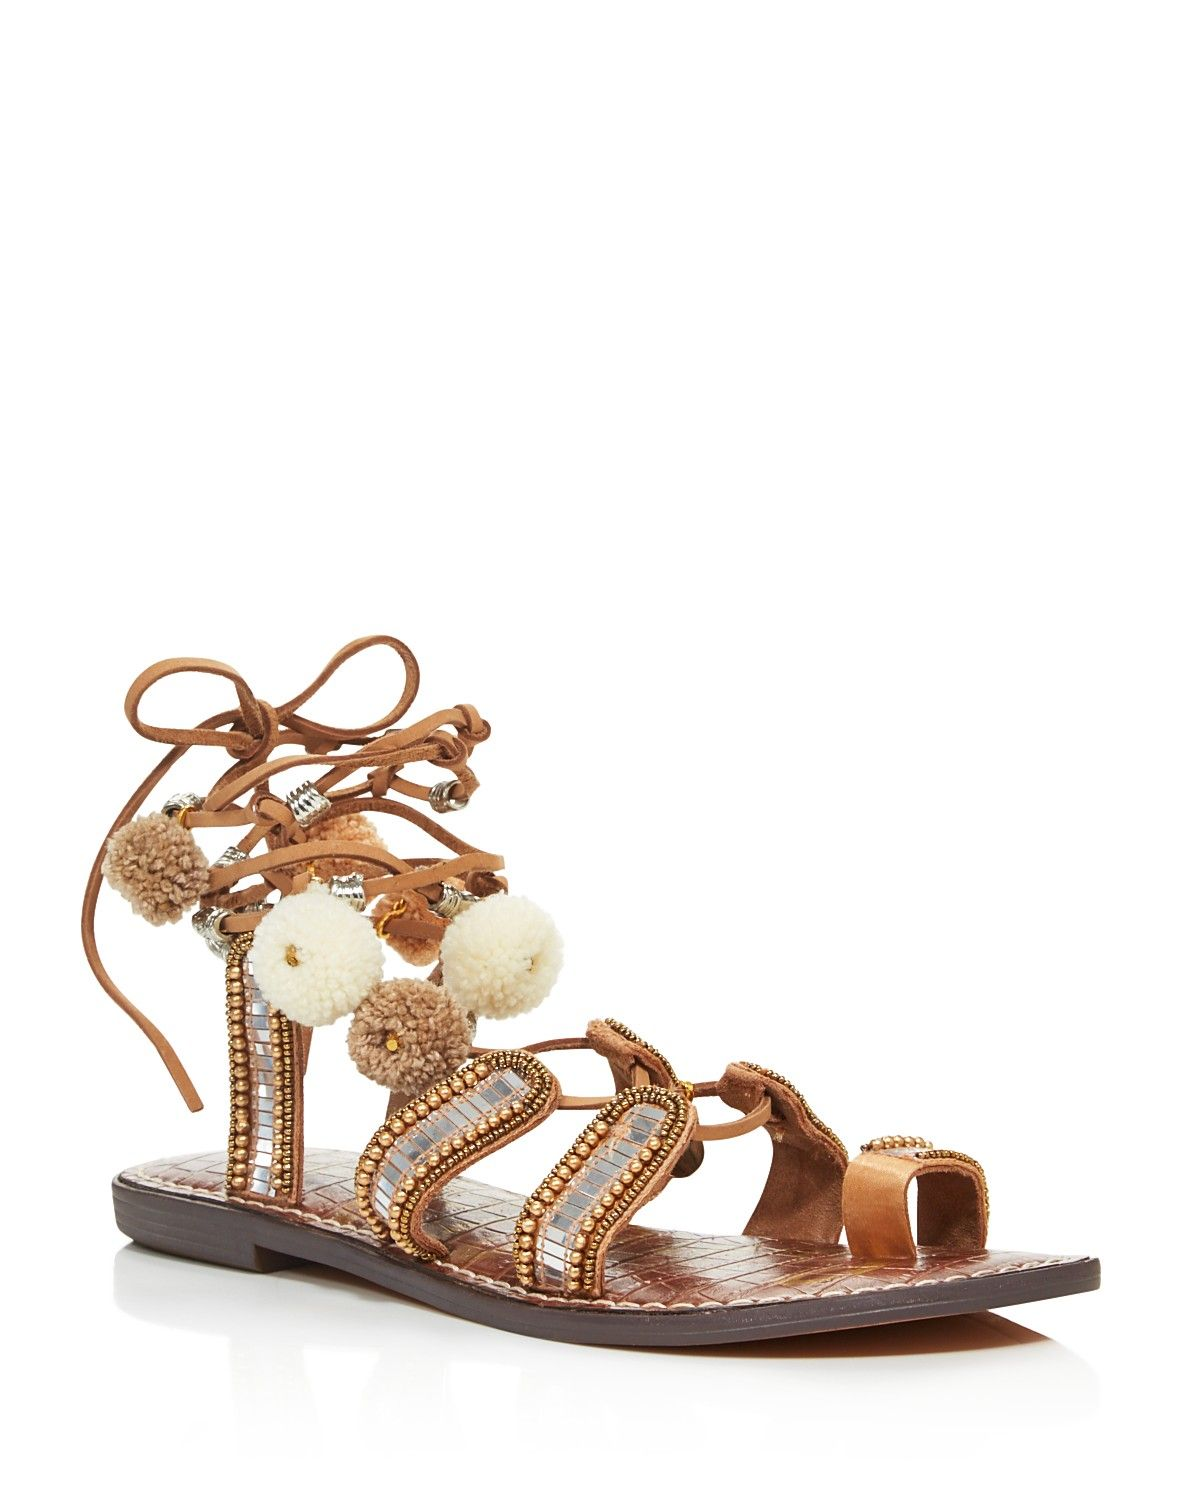 c9d083310 Sam Edelman Graciela Embellished Lace Up Sandals with Pom-Poms - 100%  Exclusive